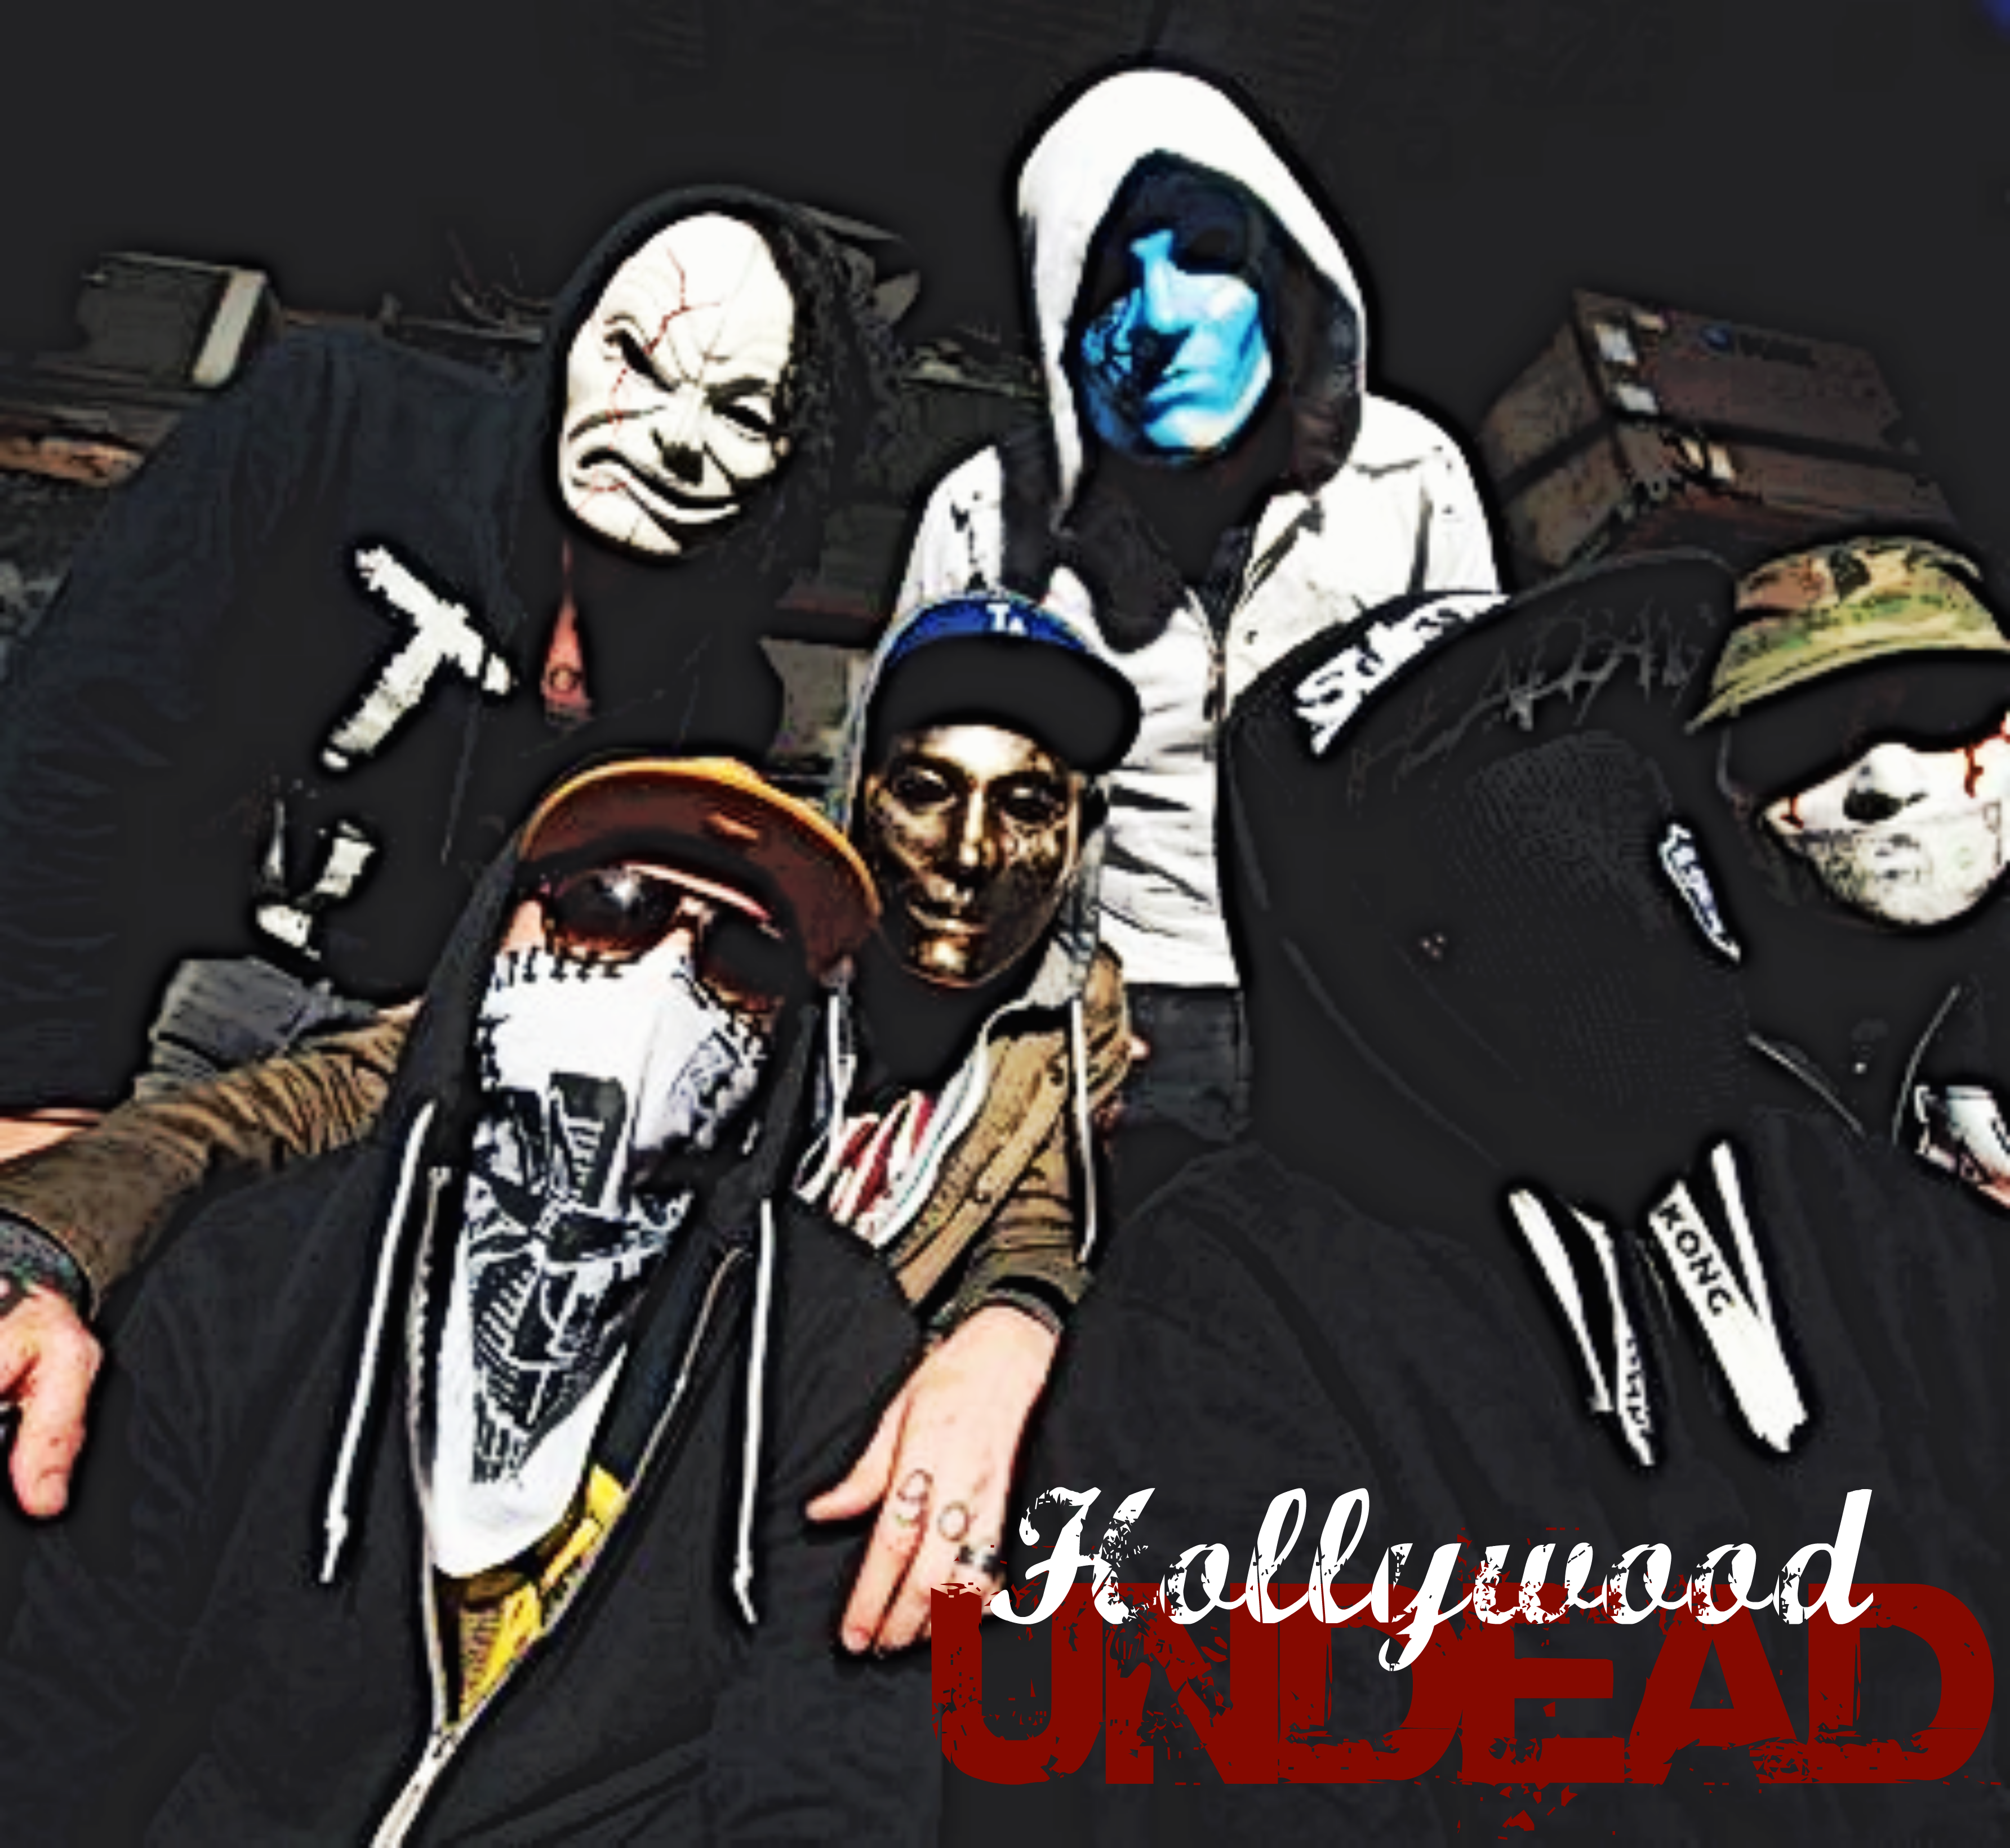 Hollywood Undead Wallpaper Logo Hollywood undead   wallpaper 3568x3280